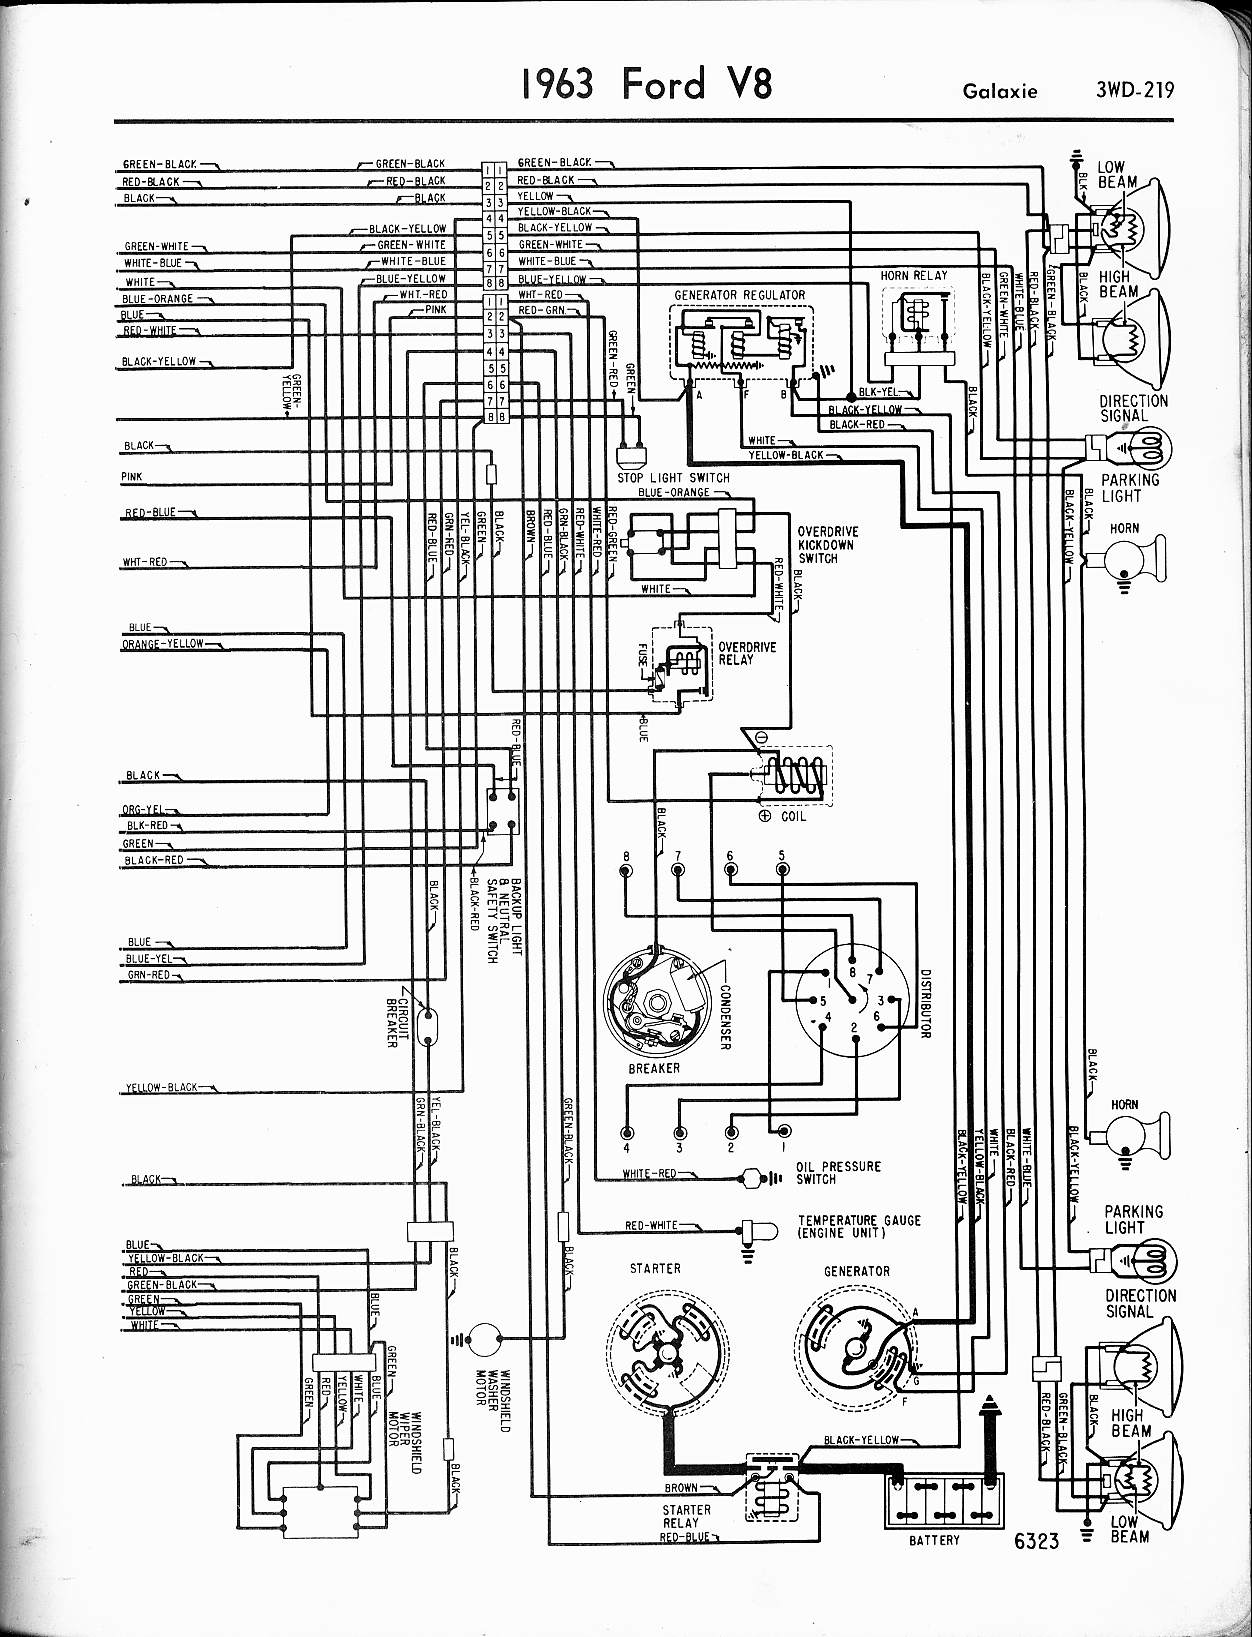 1969 Car Wiring Diagrams 1968 Mercury Cougar Diagram Data Wiring 66 Ford  Falcon Wiring Diagrams 1968 Ford Falcon Wiring Diagram